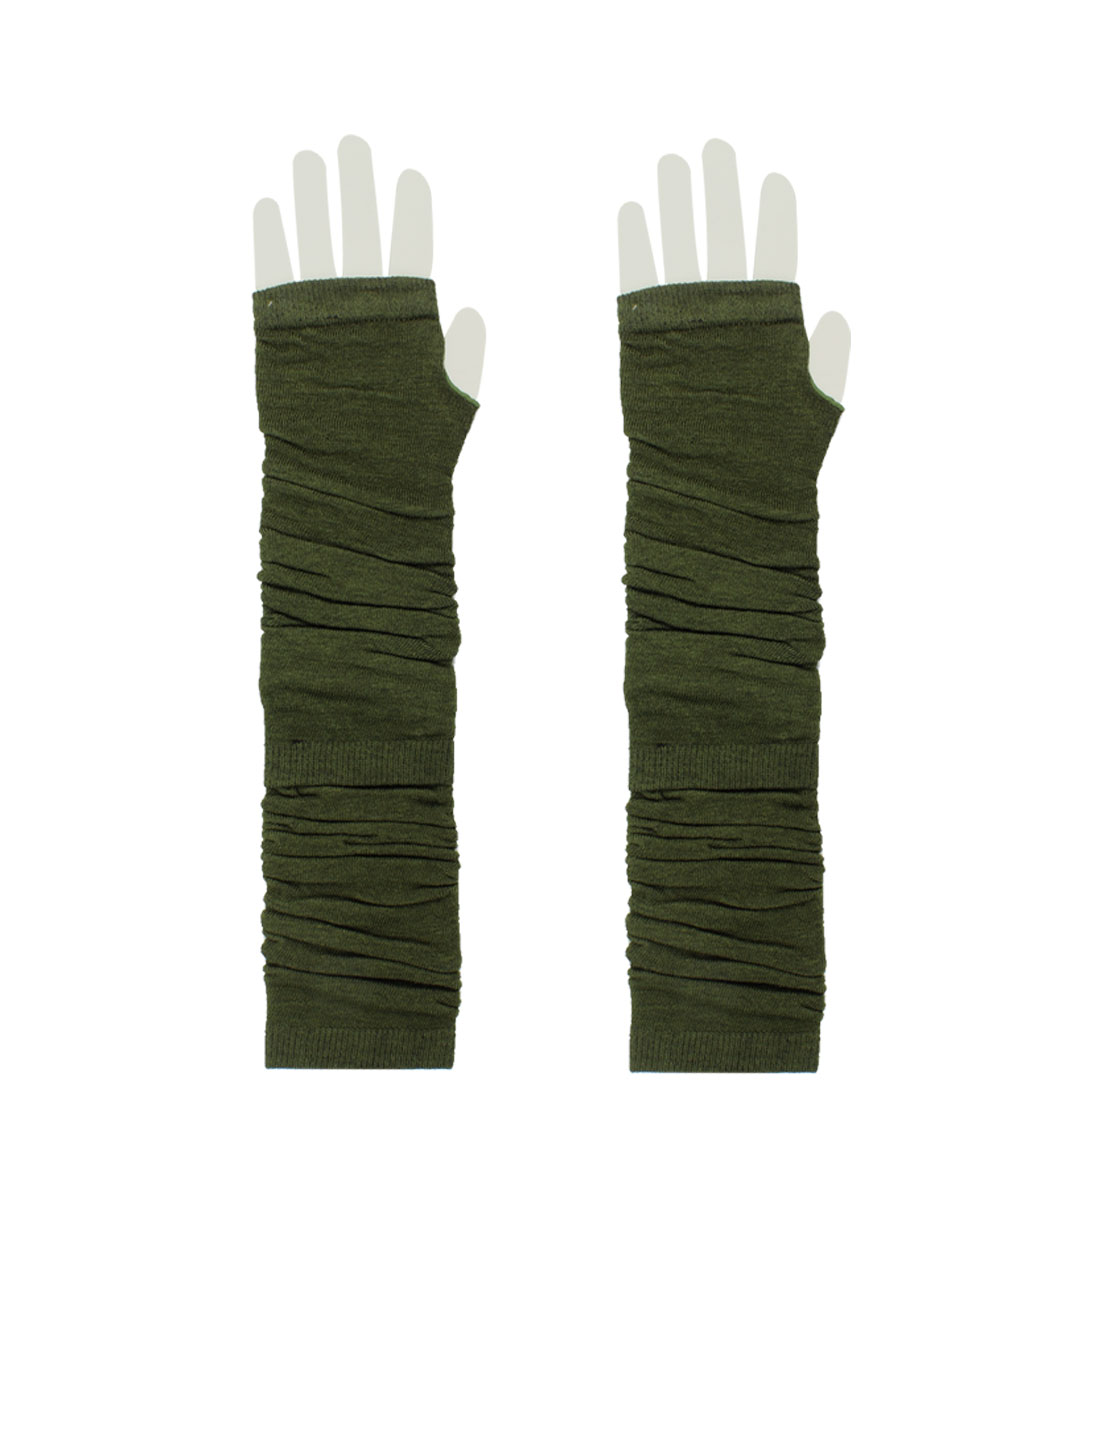 Women Pair Elastic Thumbless Fingerless Arm Warmers Gloves Army Green